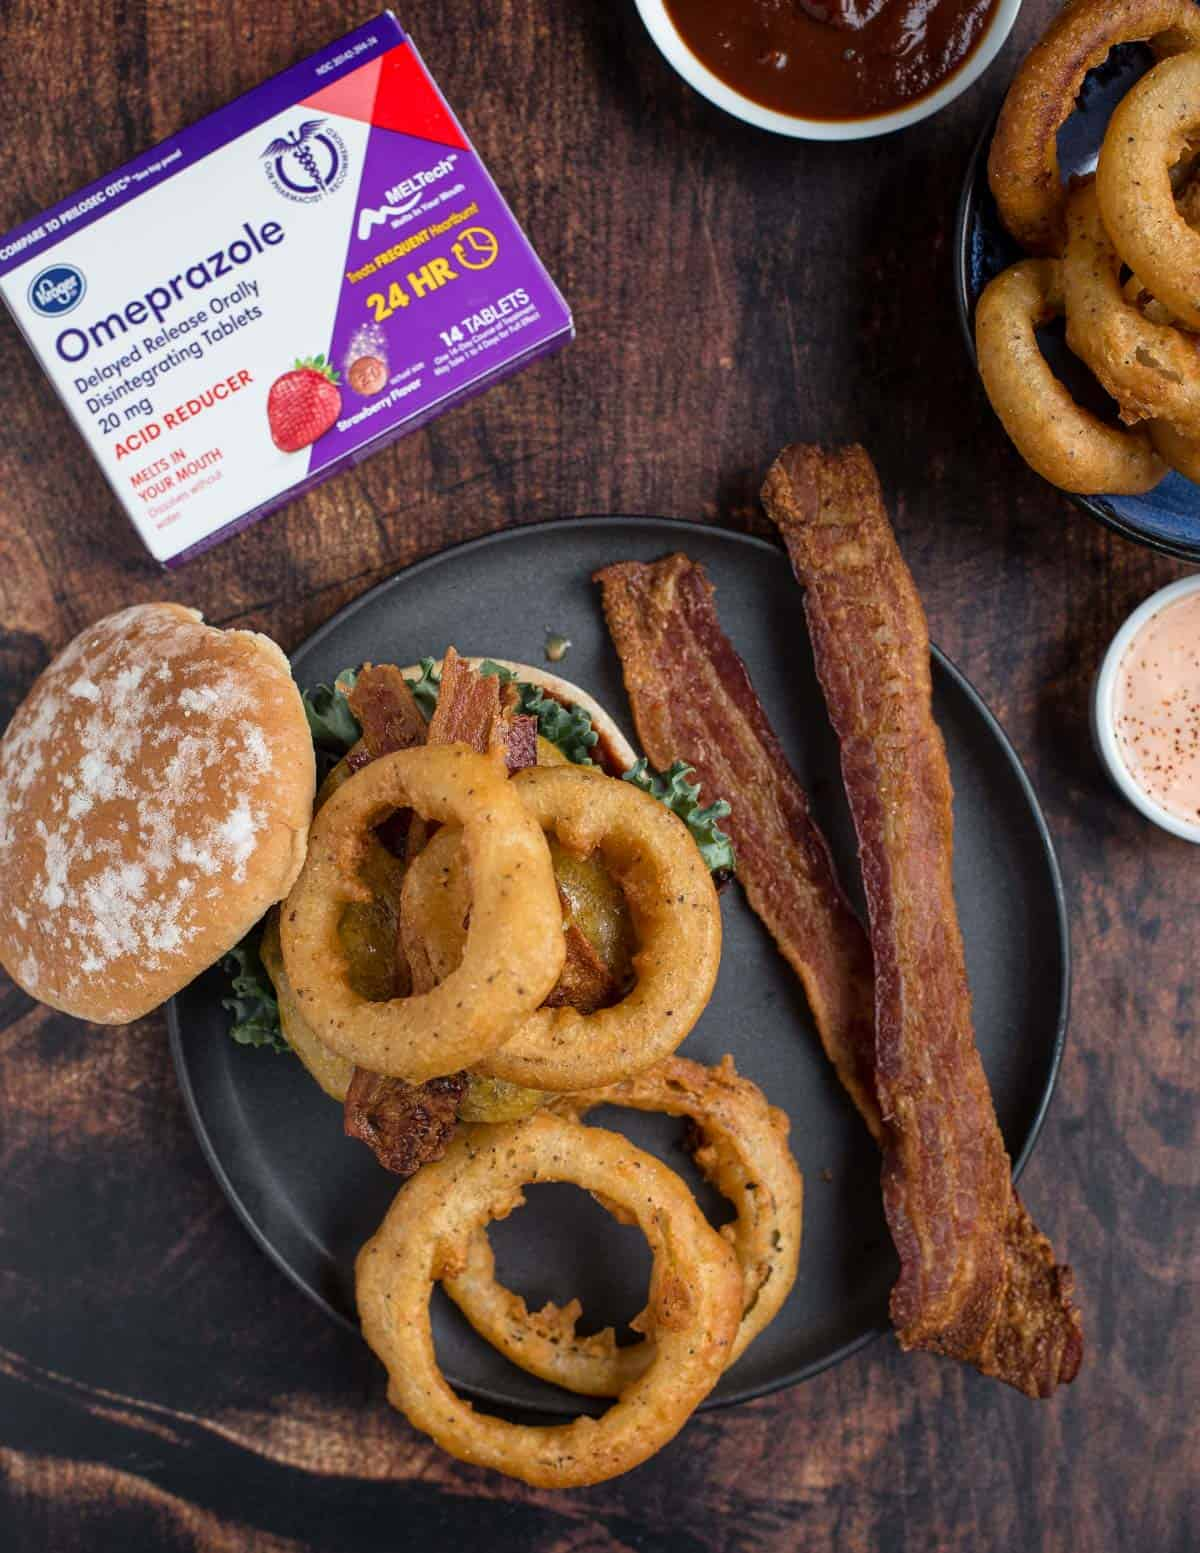 Beer battered onion rings and western style burger with bacon. Sponsored by Omeprazole ODT.